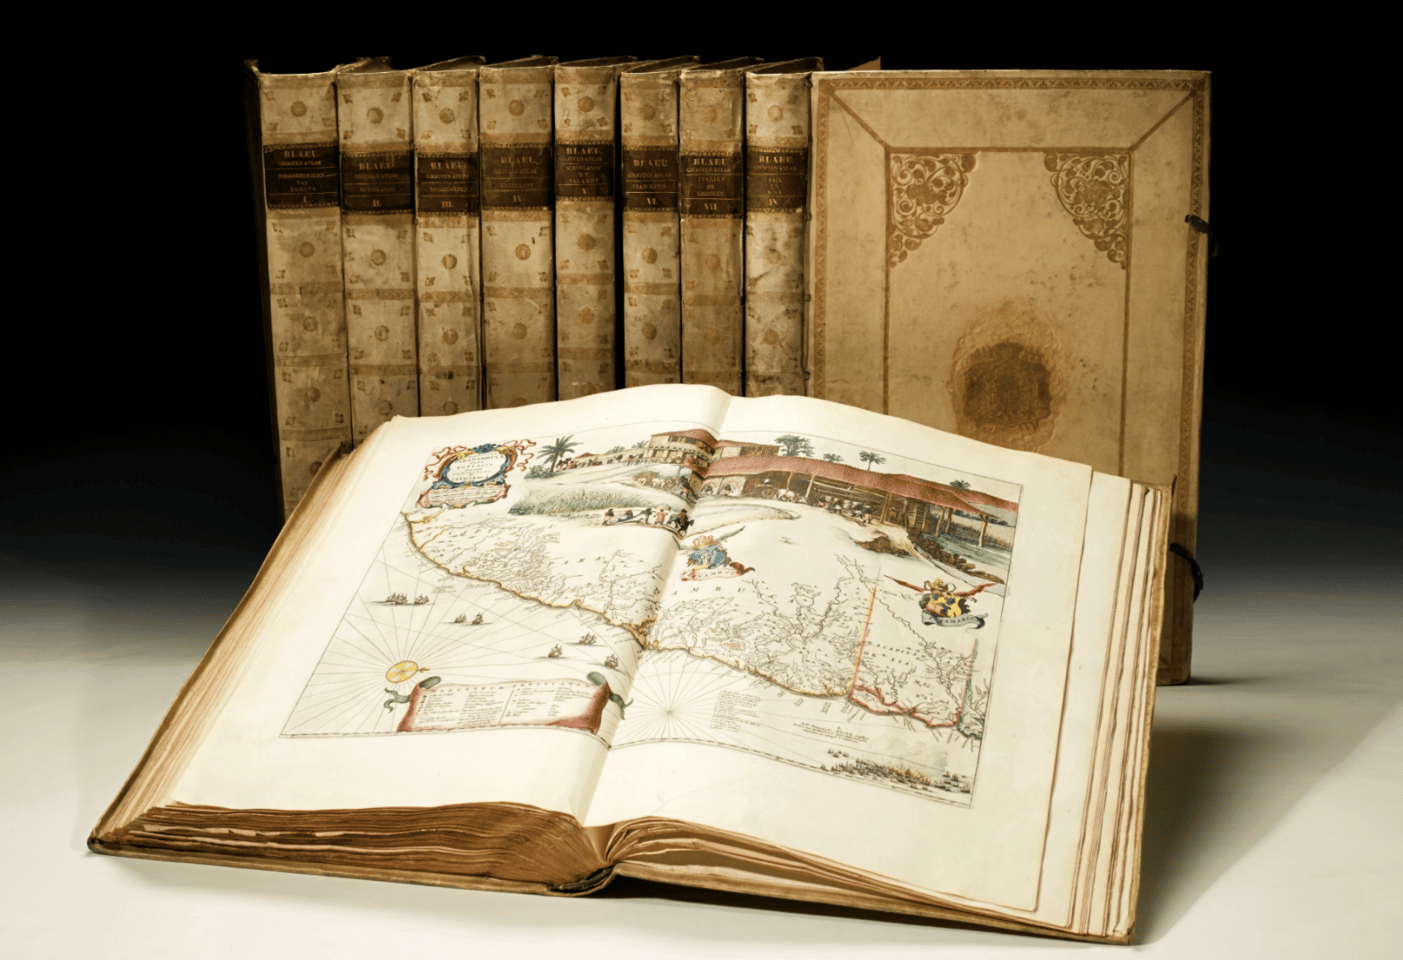 "The Grooten Atlas is one of the many remarkable achievements of a father and son who contributed so much to our understanding of the world. Both Dutch cartographers, atlas and globe makers and publishers, Johannes Blaeu (1596 – 1673) was the son of cartographer Willem Blaeu (1570 - 1630). The Atlas Major was published between 1662 and 1672, and the Dutch version was named the Grooten Atlas. It was the largest and most expensive book published in the 17th century and in the auction description of the most valuable copy sold to date (sold by Sothebys in November, 2015 for $883,944 - £581,000) it was described as ""the most famous atlas in the history of printed maps"" and ""the most magnificent work of its kind ever produced."" This copy sold for $567,366 (£389,000) by Sothebys on April 28, 2016."